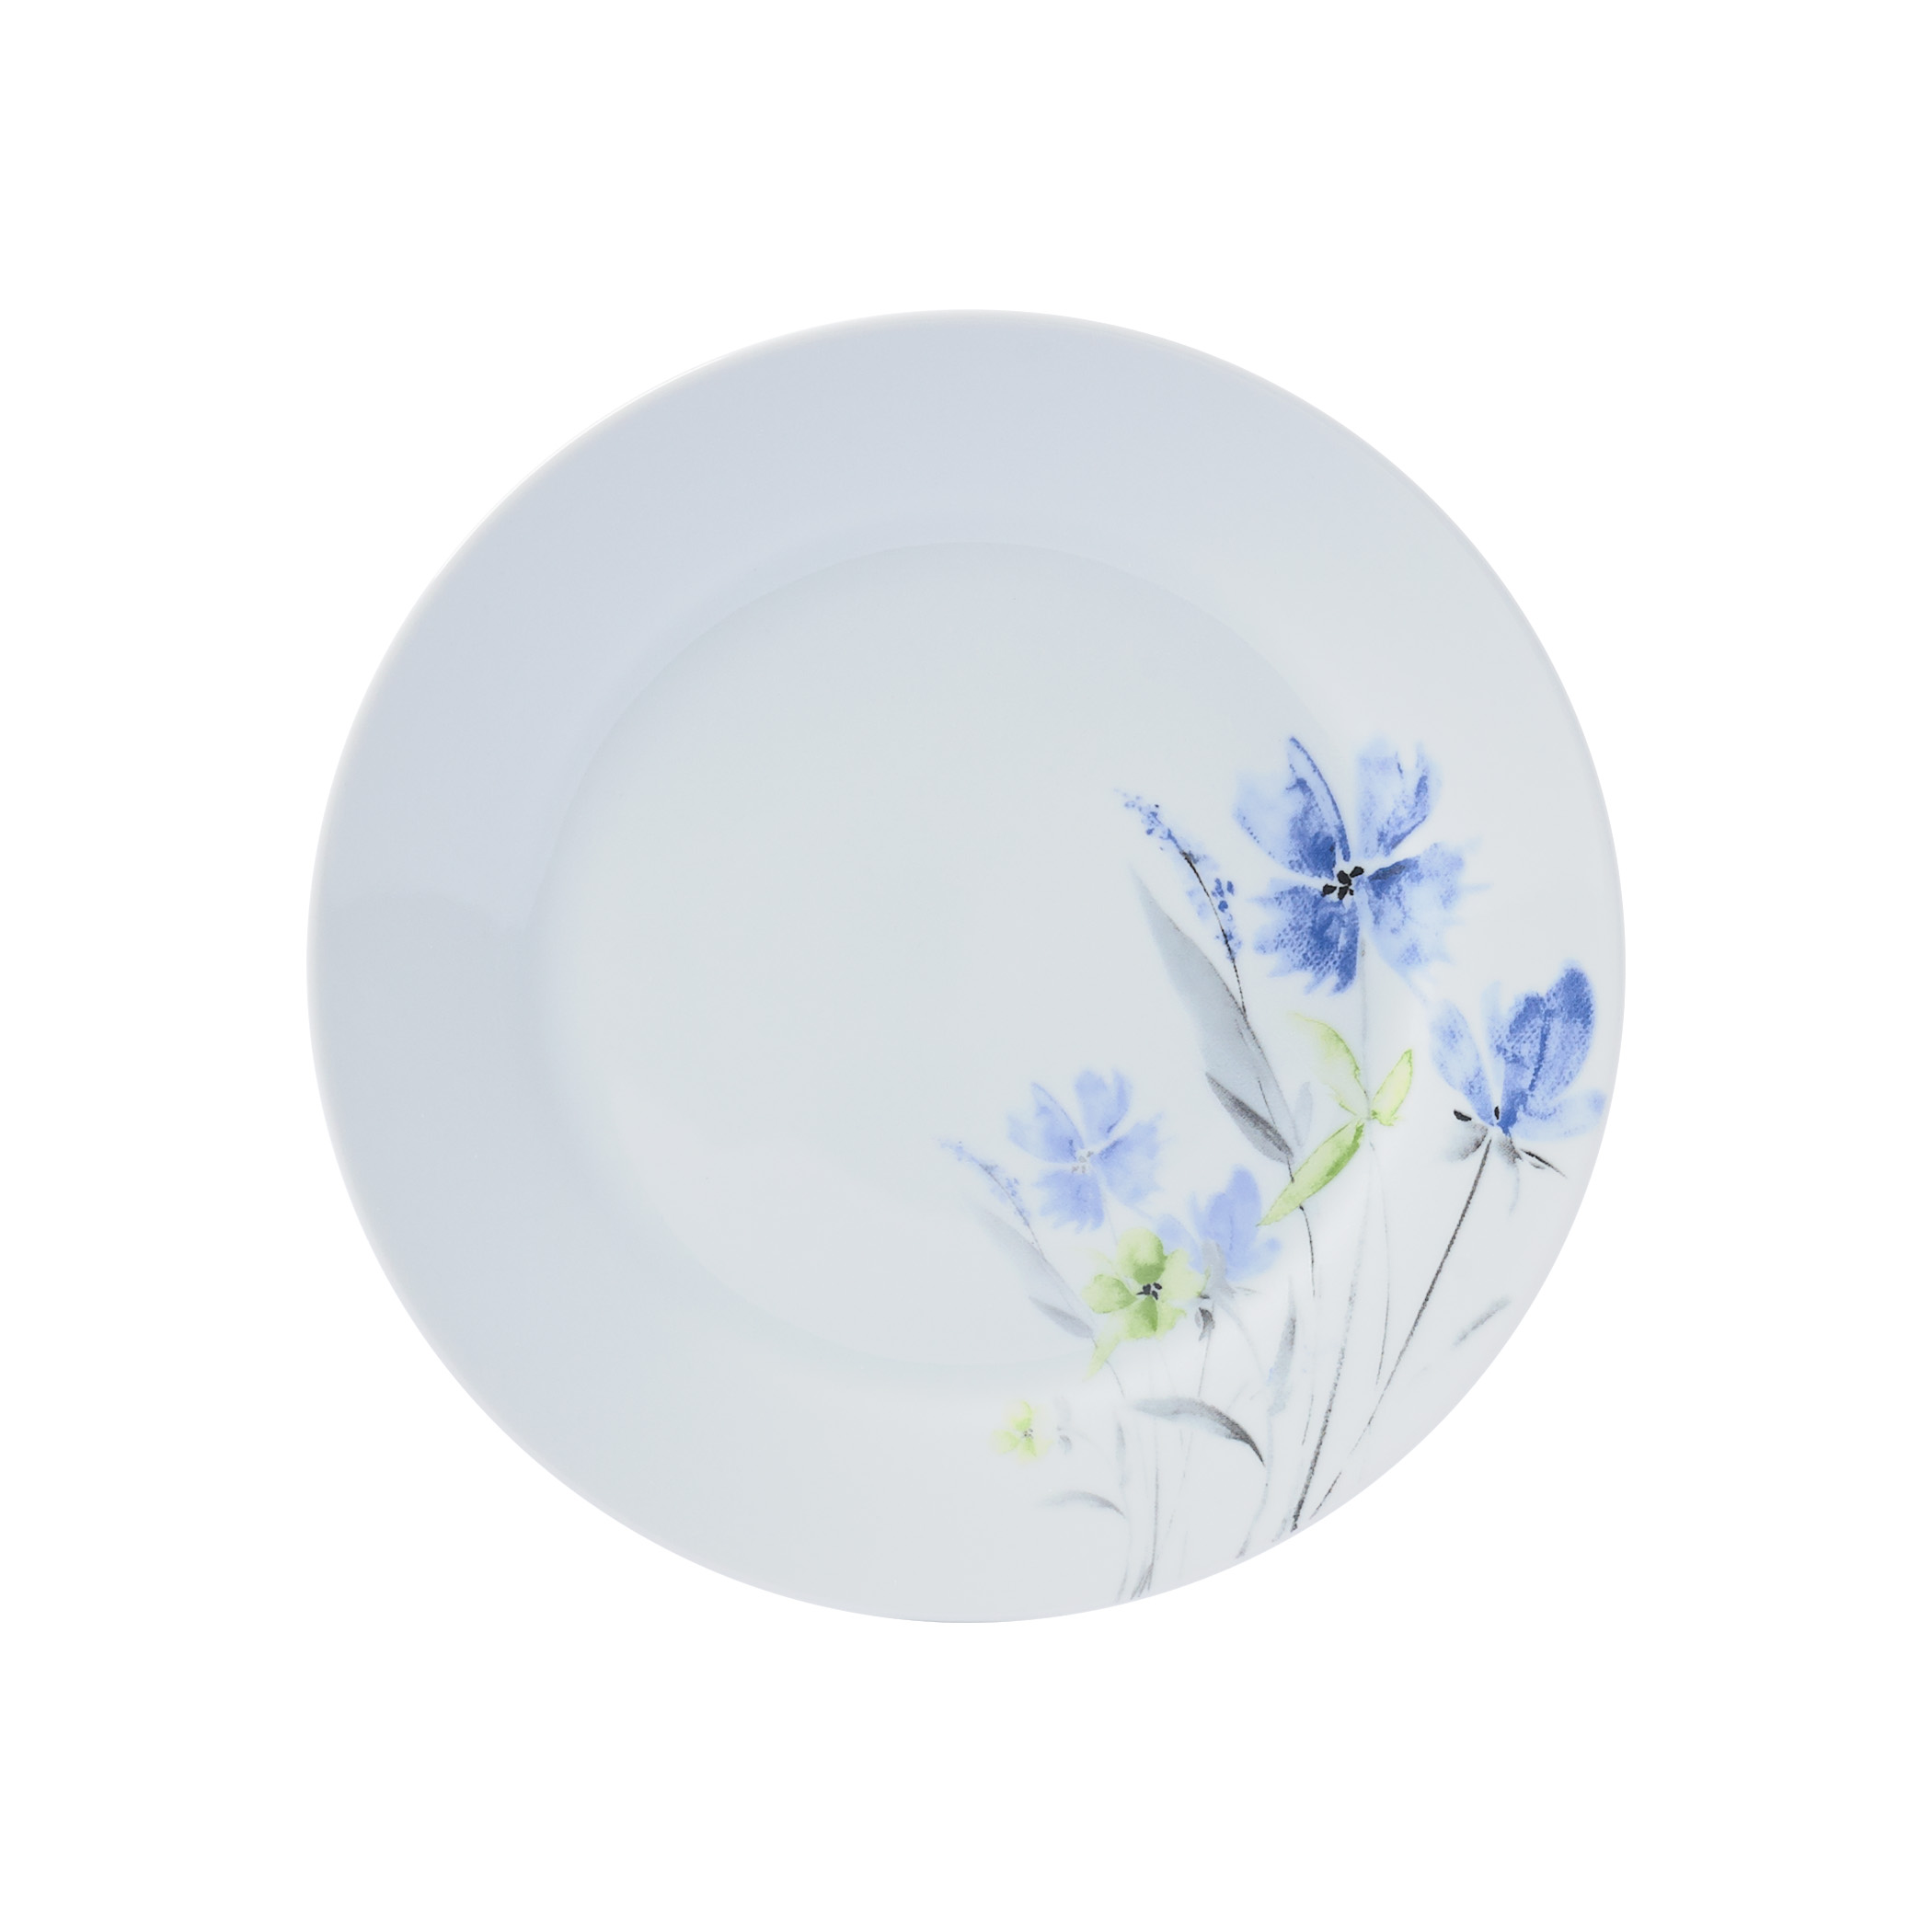 ... TTU 83700 EC 16 Piece Porcelain Dinnerware Set By Tabletops Gallery_2  ...